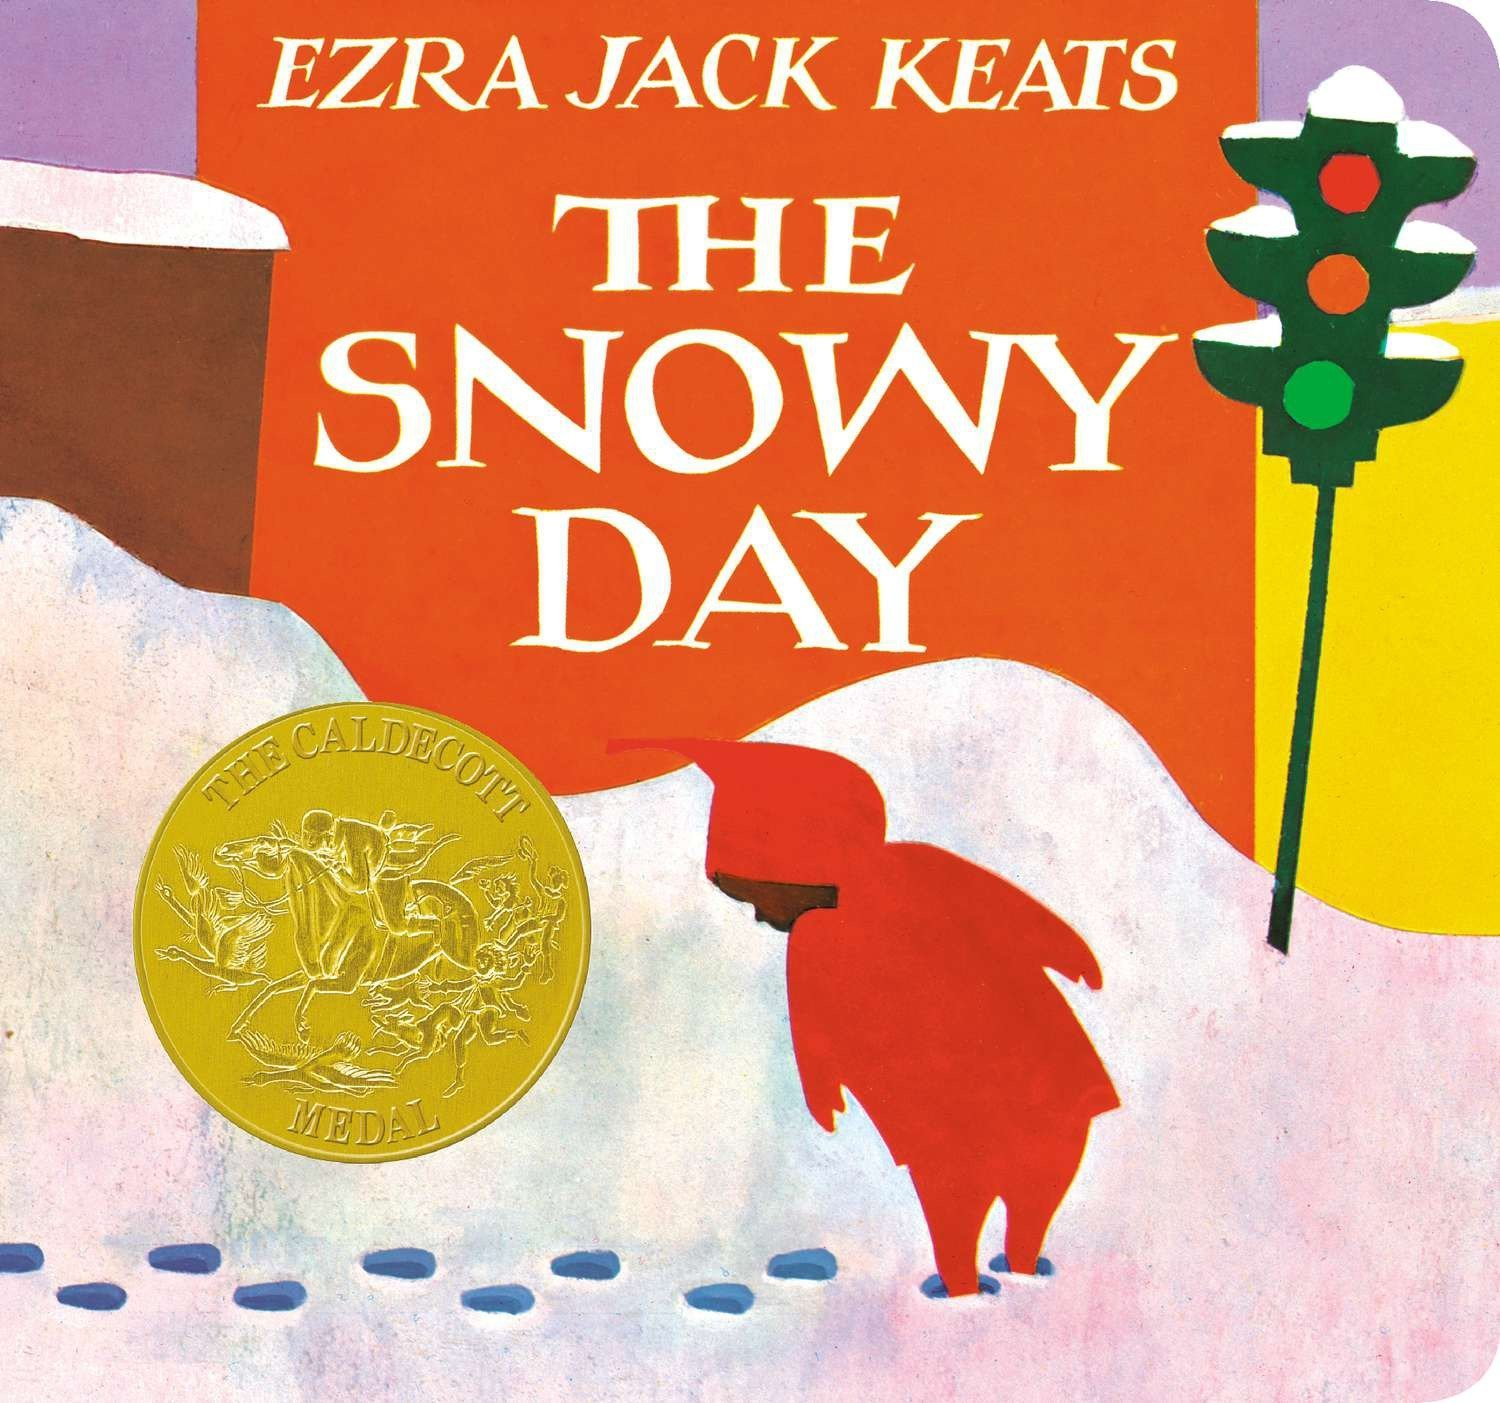 10. 'The Snowy Day'